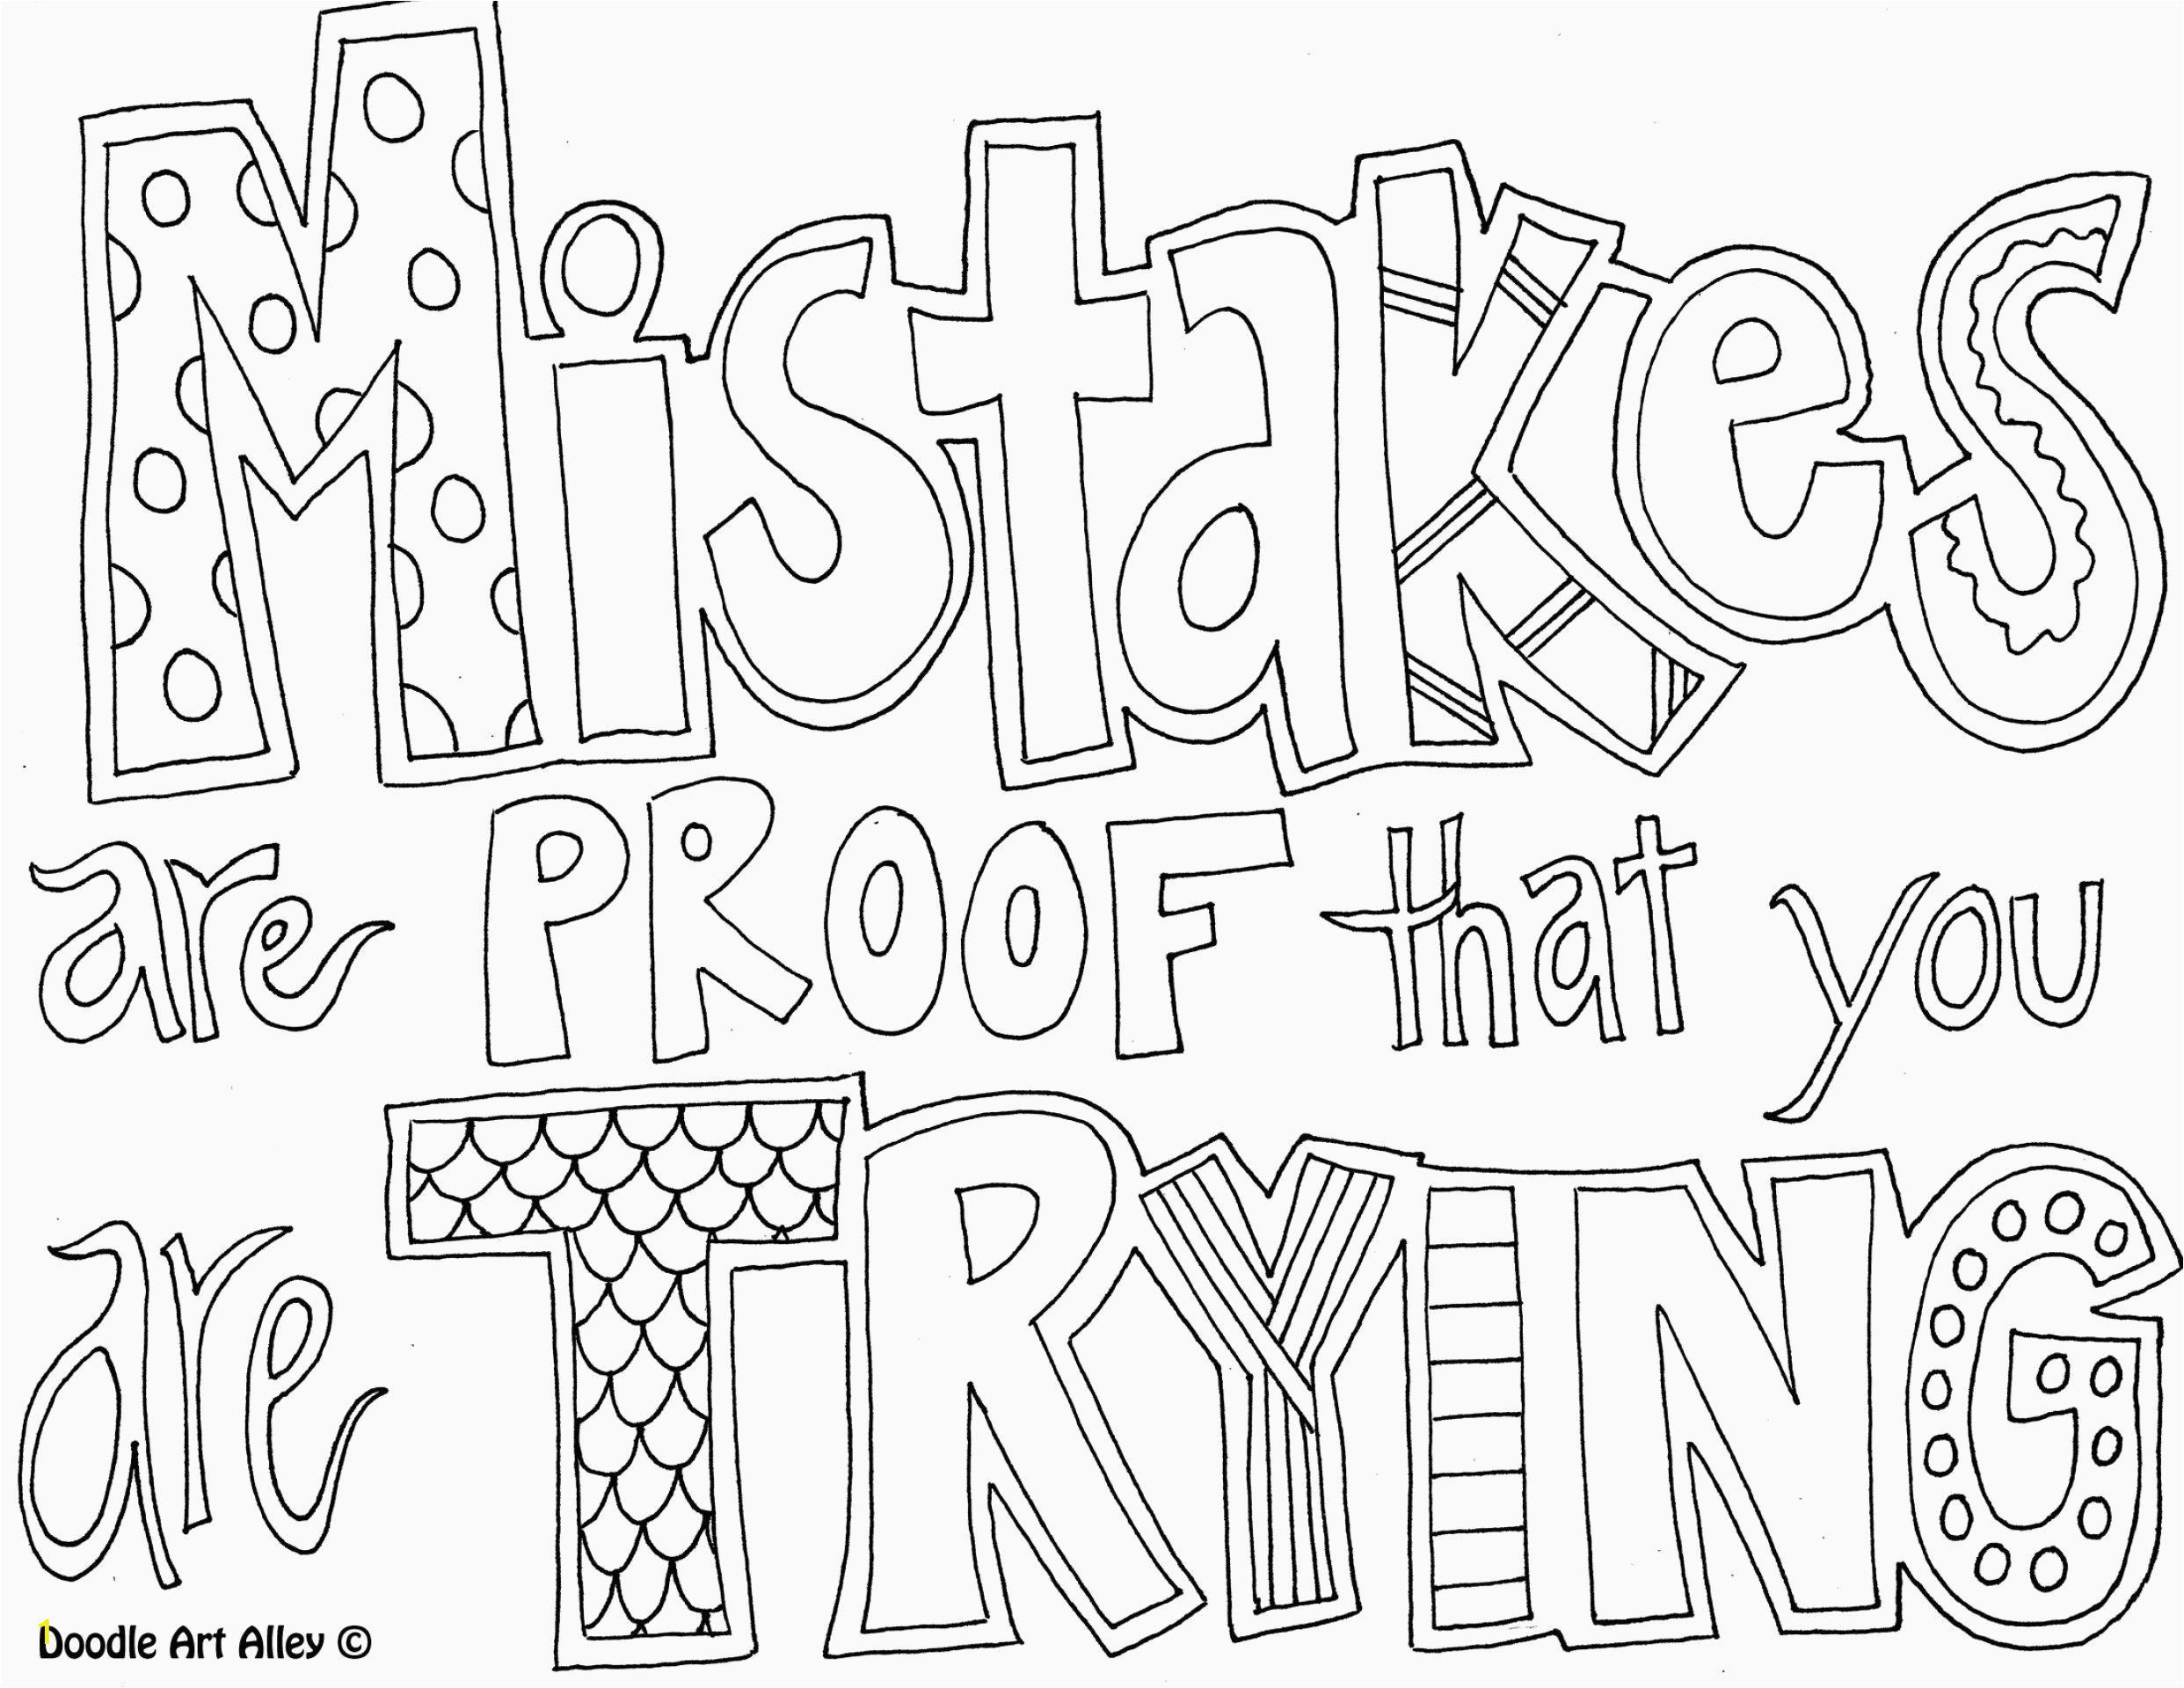 Coloring Pages with Quotes Printable You are Special Coloring Pages Di 2020